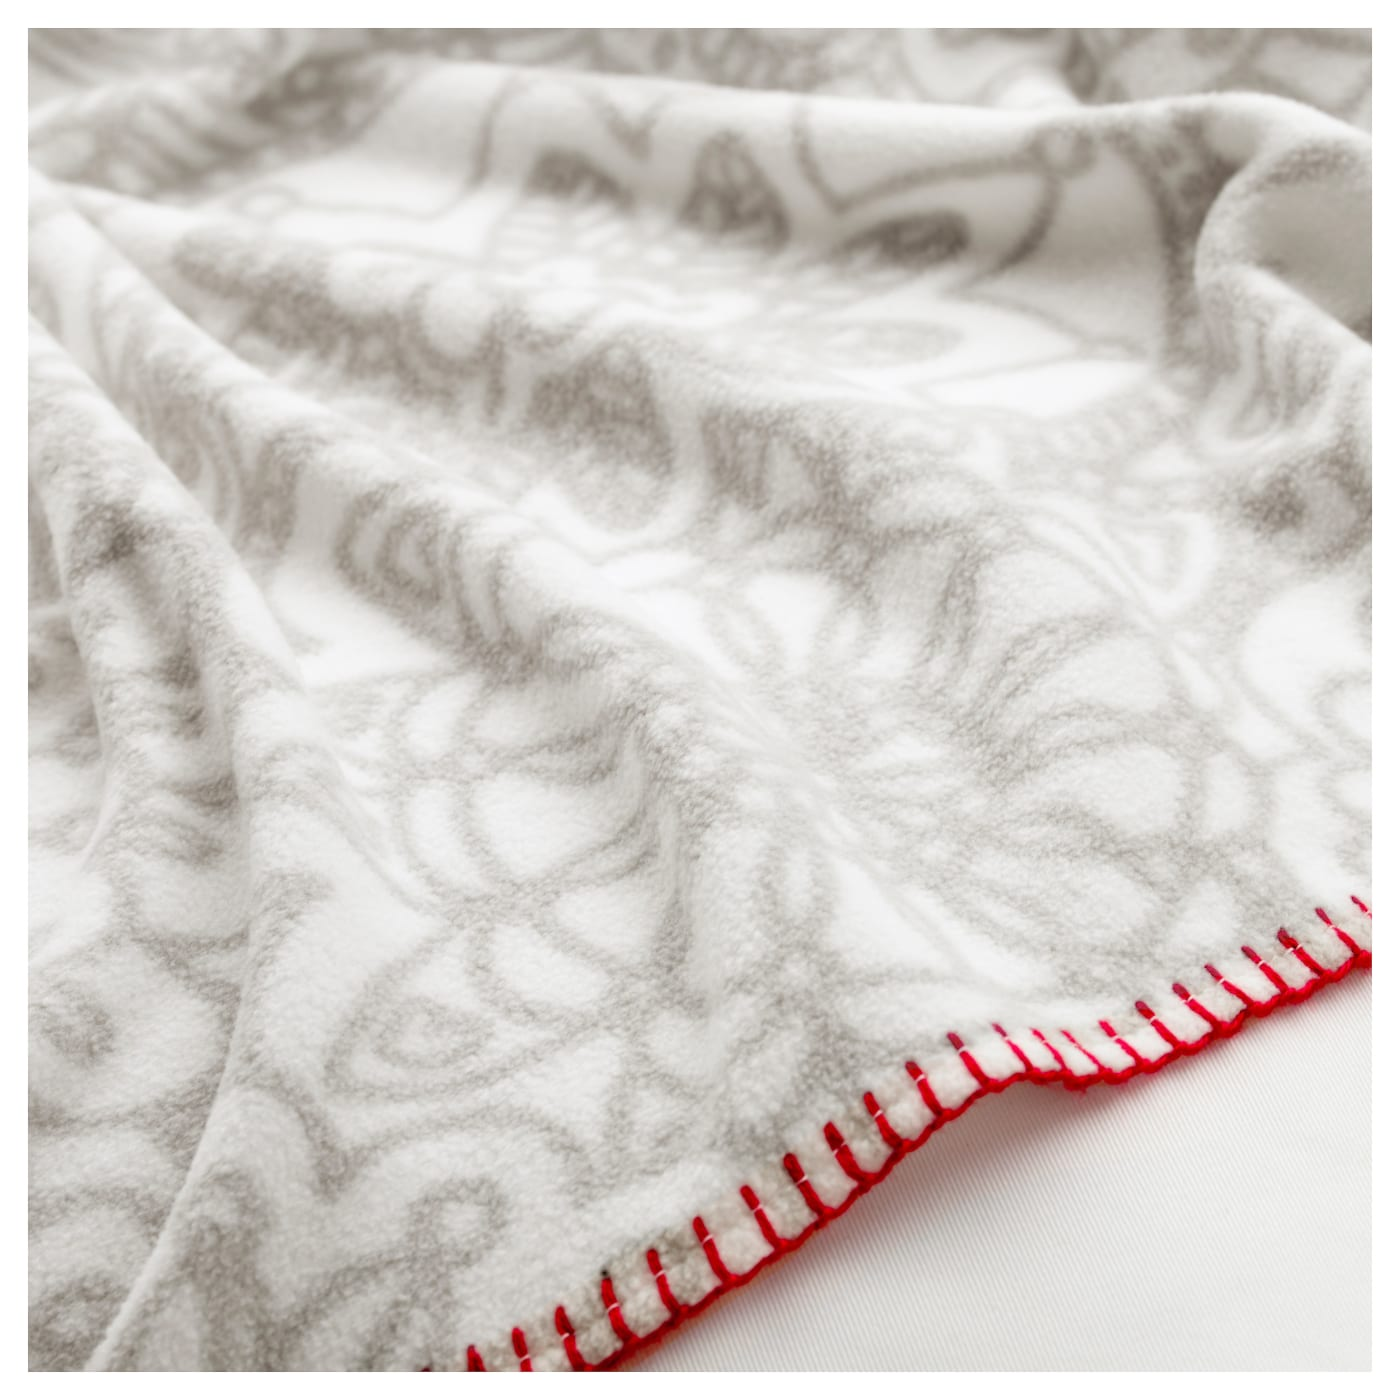 IKEA VÄNSKAPLIG blanket You can use the blanket on top of a sheet or inside a quilt cover.